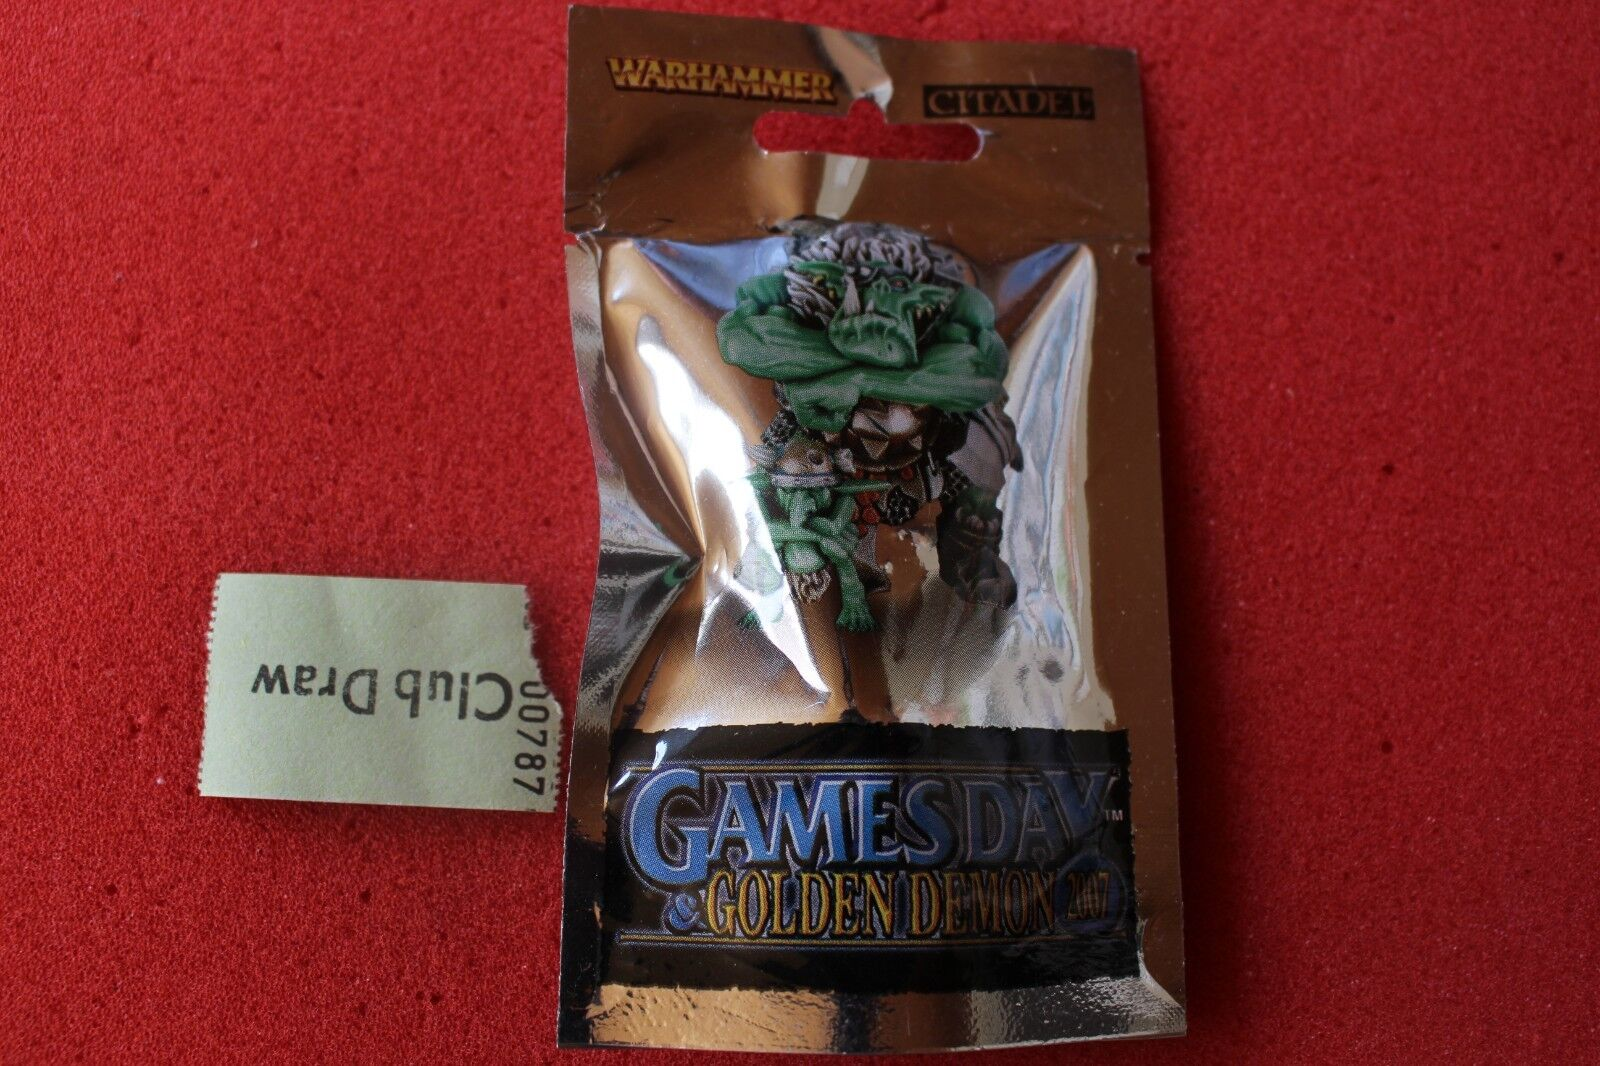 Games Workshop Warhammer Gamesday 2007 GD07 Limited Edition Orc Warboss Metal GW